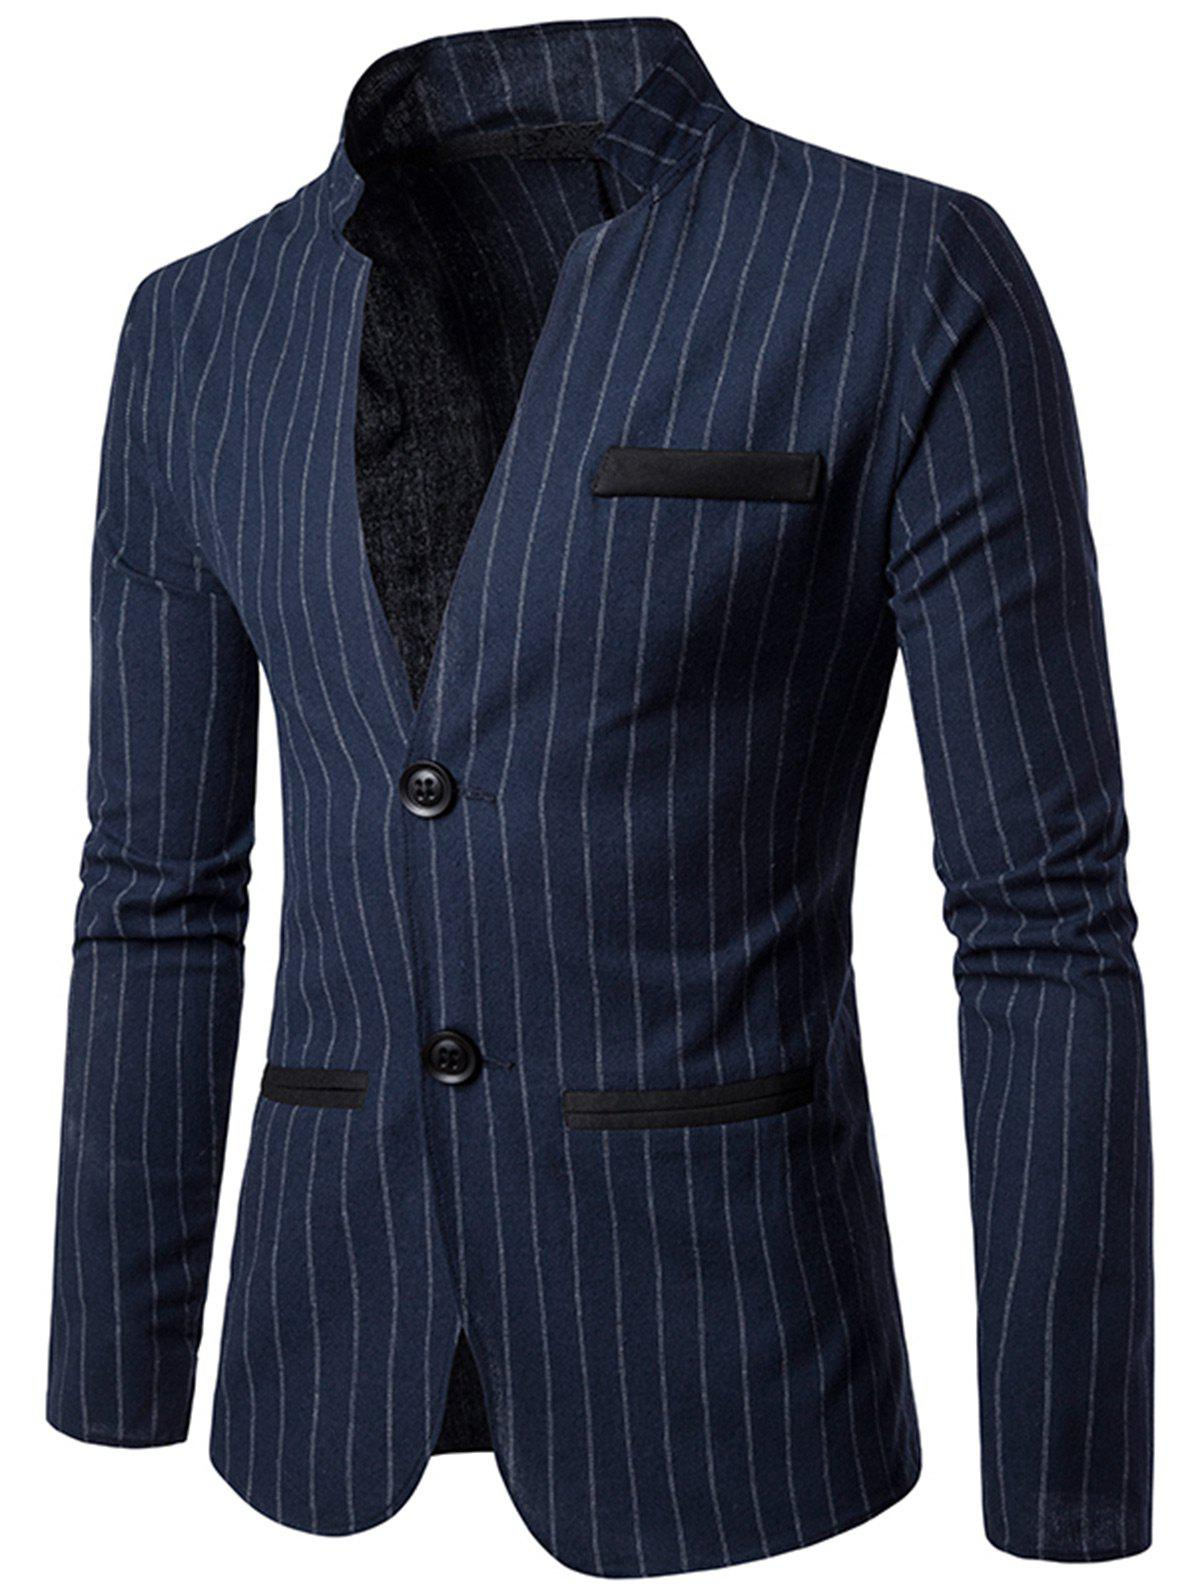 Slim Fit Vertical Stripe Casual Blazer - CADETBLUE L